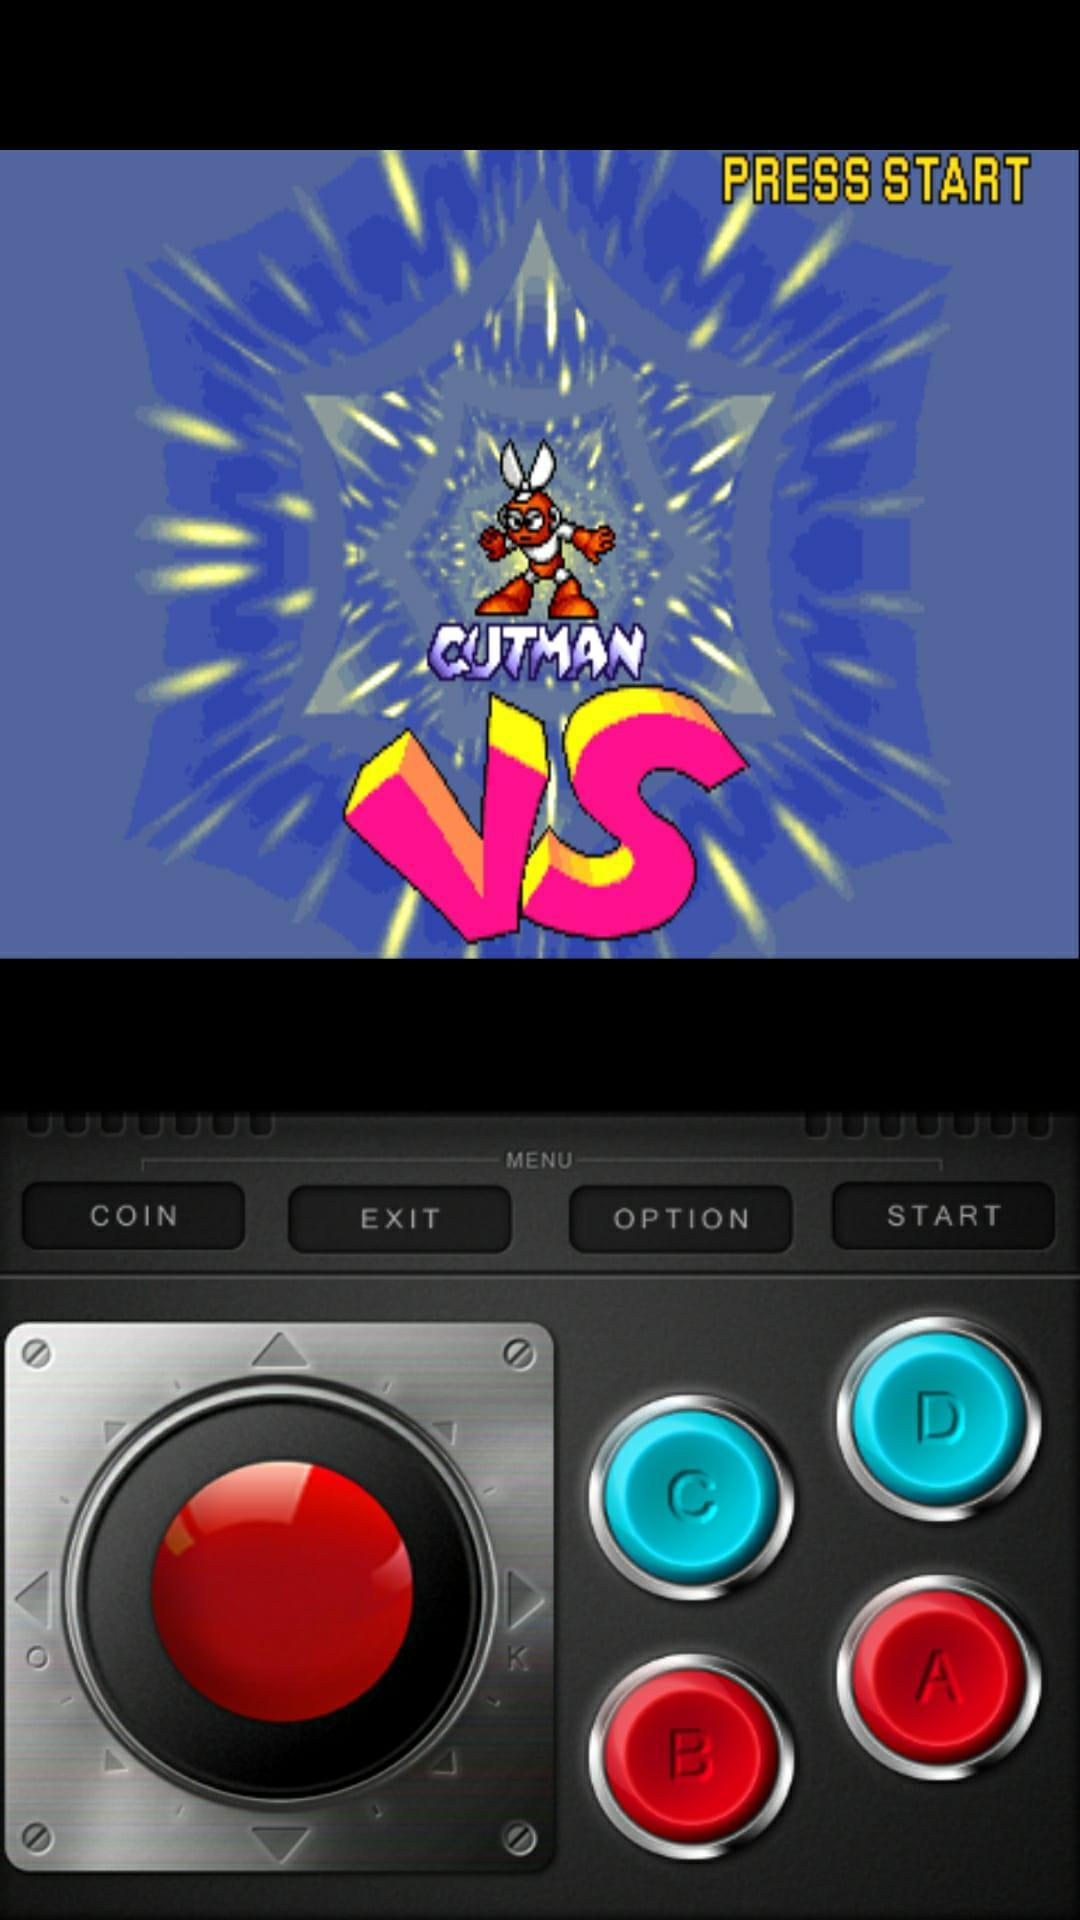 Code Mega Man 2: The Power Fighters for Android - APK Download